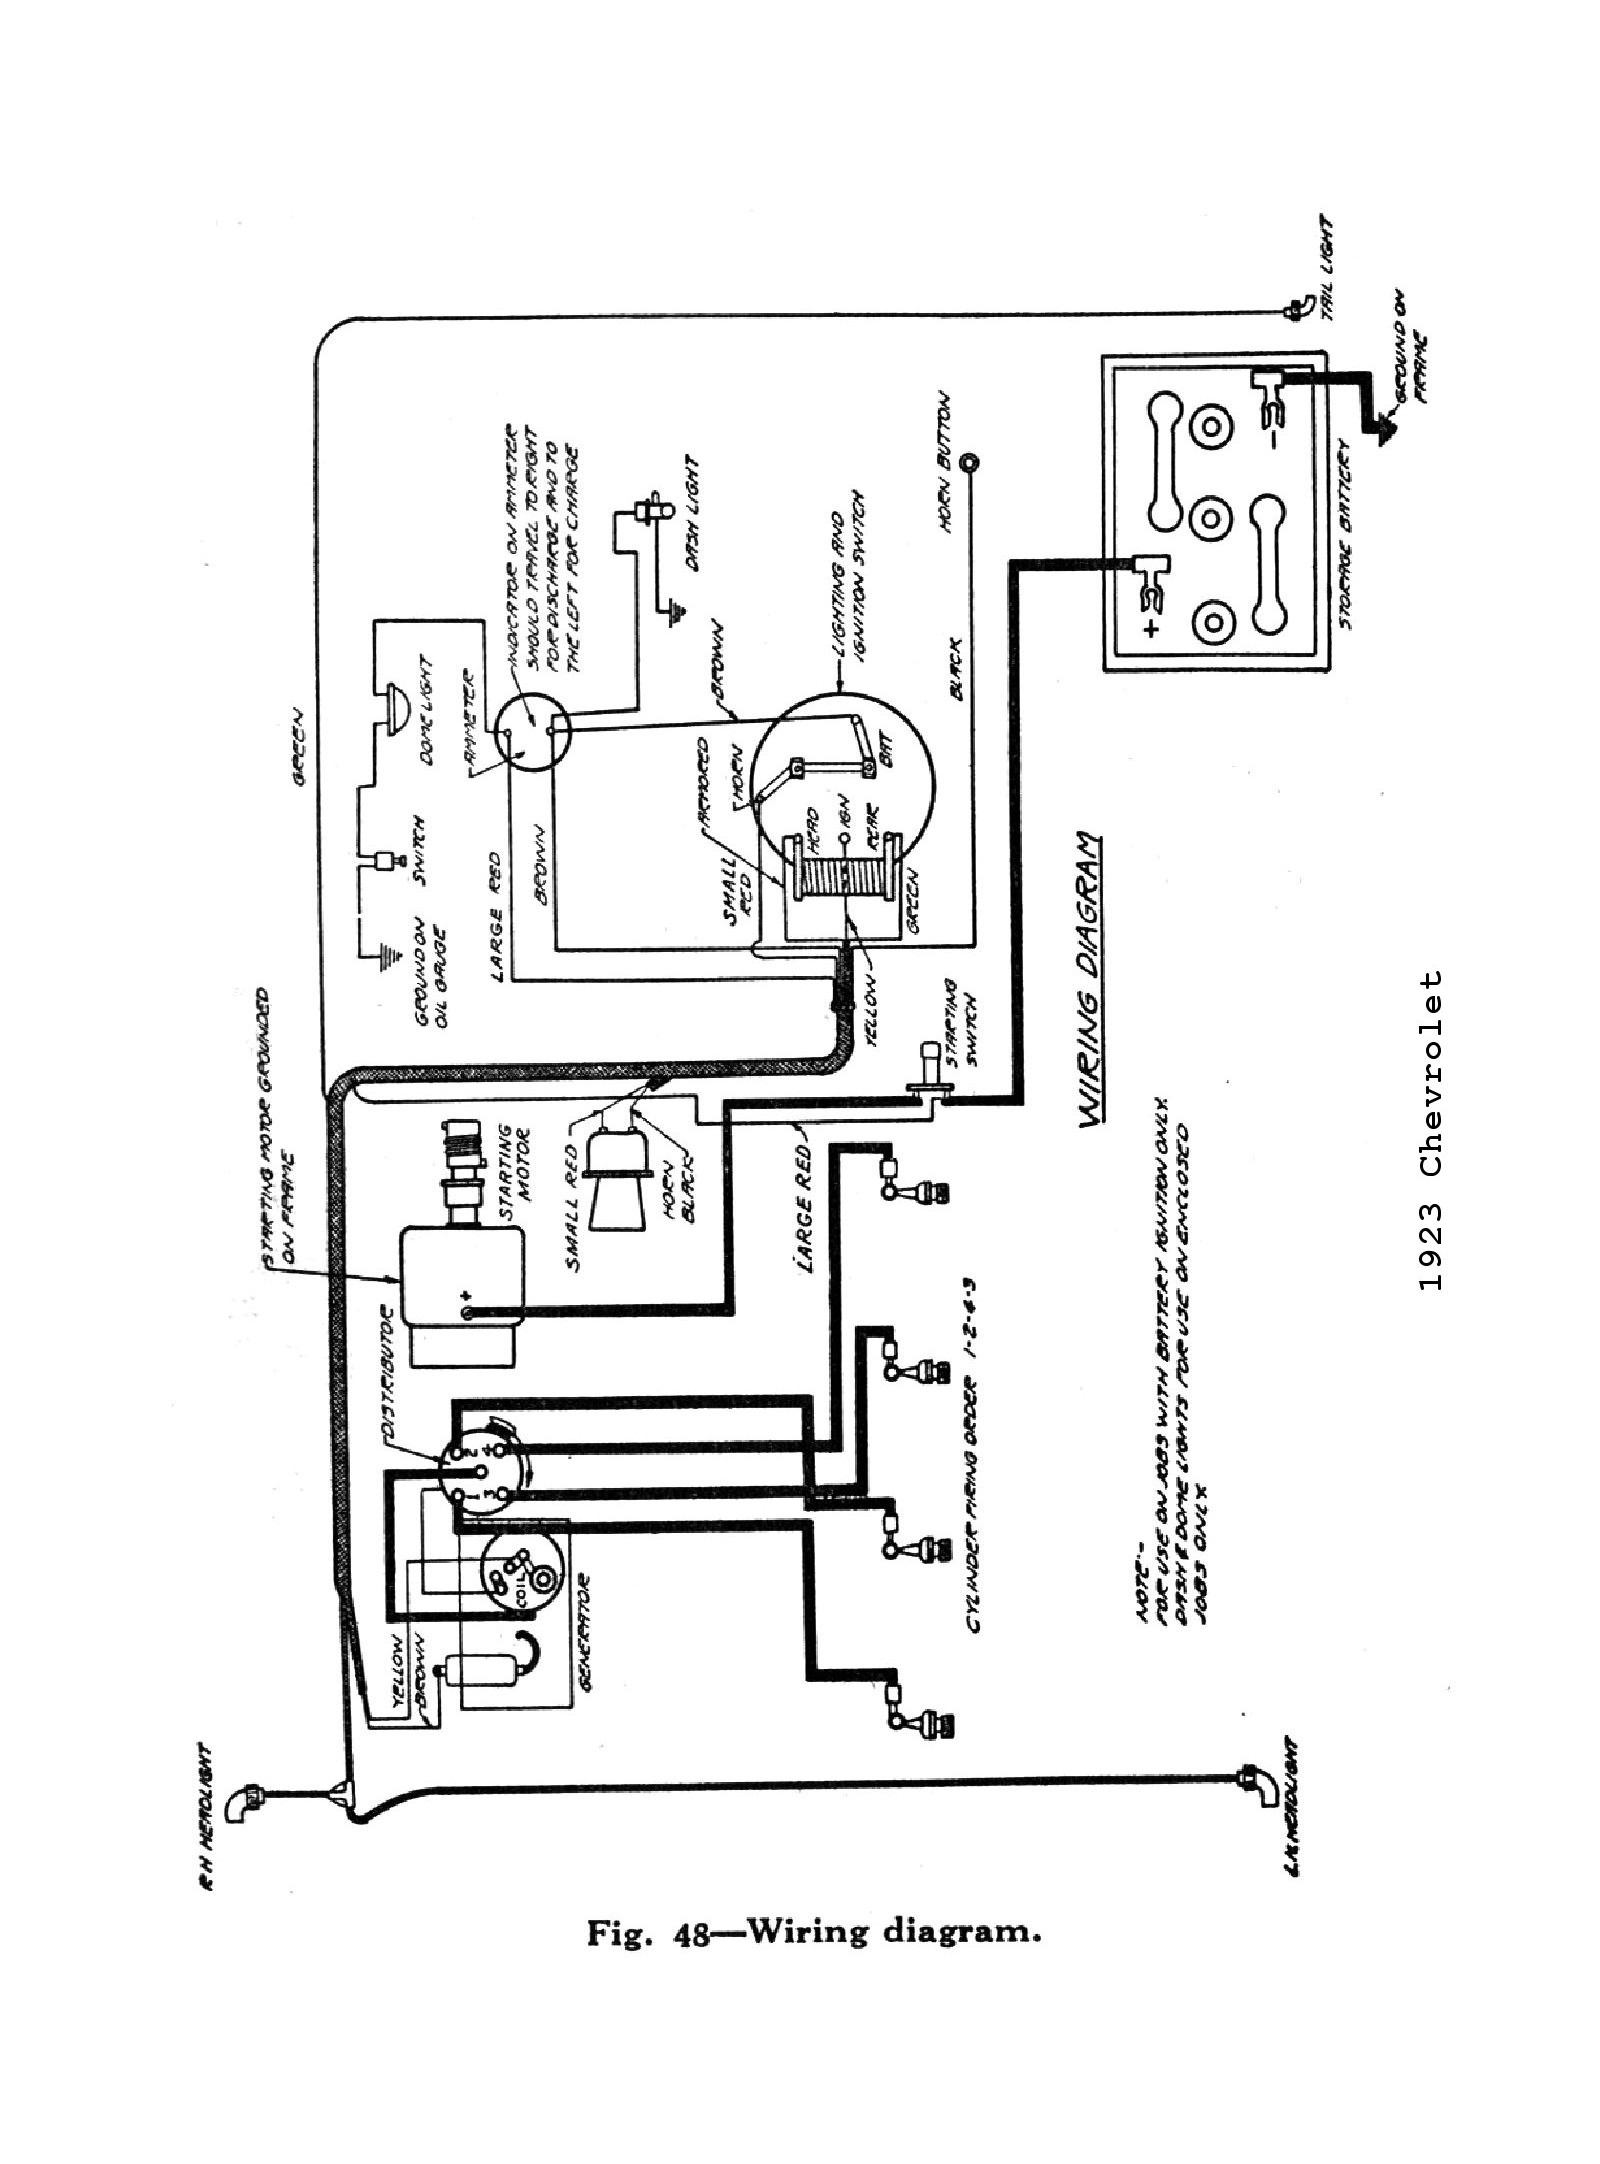 1960 chevy ignition wiring diagram detailed schematic diagrams rh 4rmotorsports com